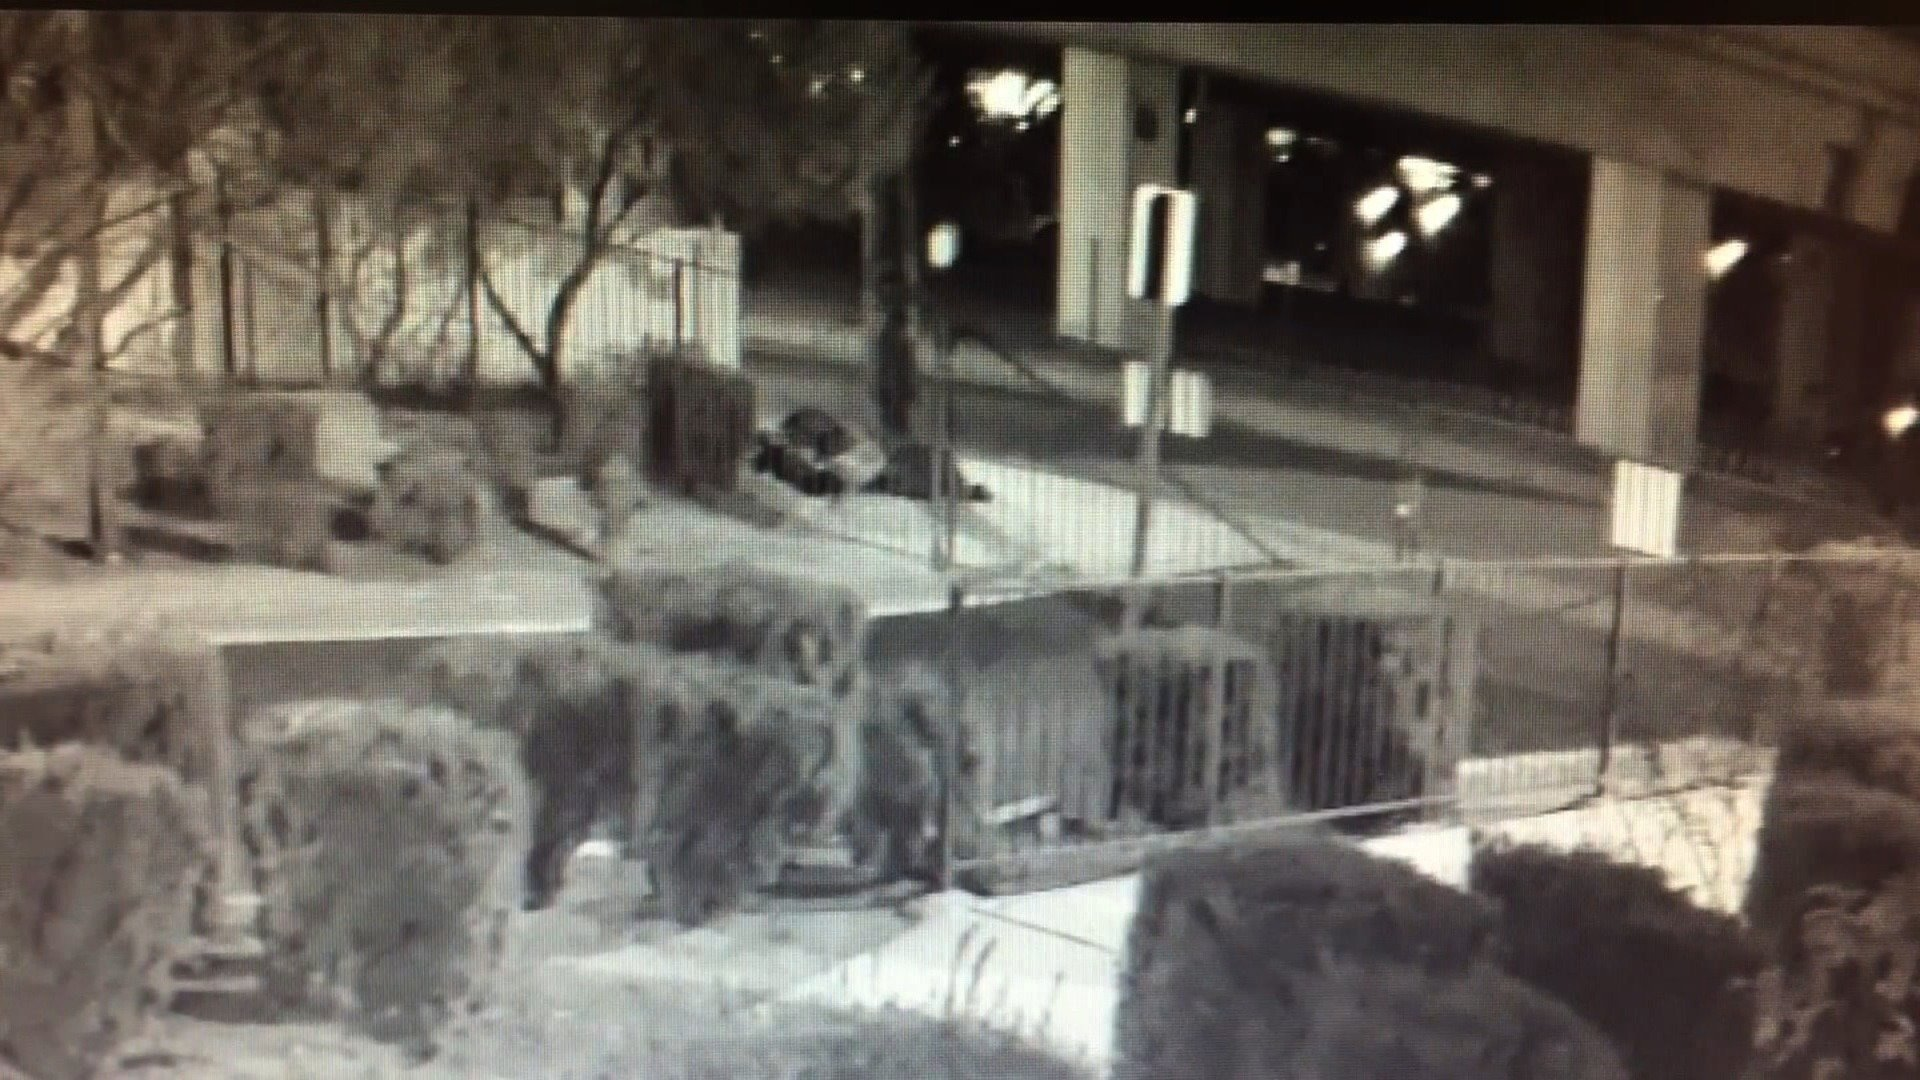 The video is chilling. James Edgar Lewis is sleeping under a Las Vegas freeway when a dark-colored SUV passes by. Seconds later, a man wearing a dark top emerges from the vehicle and shoots Lewis twice in the head before fleeing.